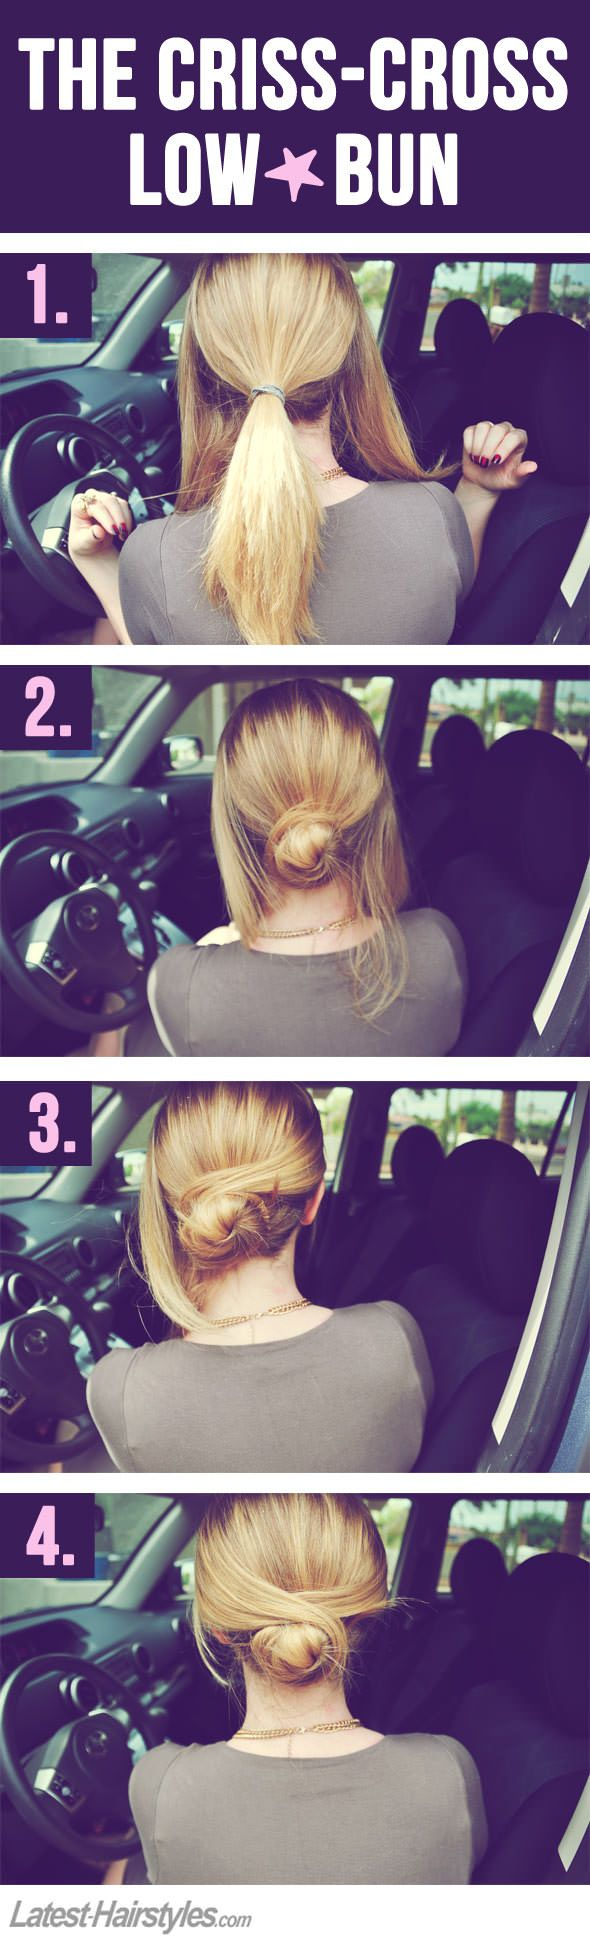 Criss Cross Bun. SO easy you can do it in your car, apparently.